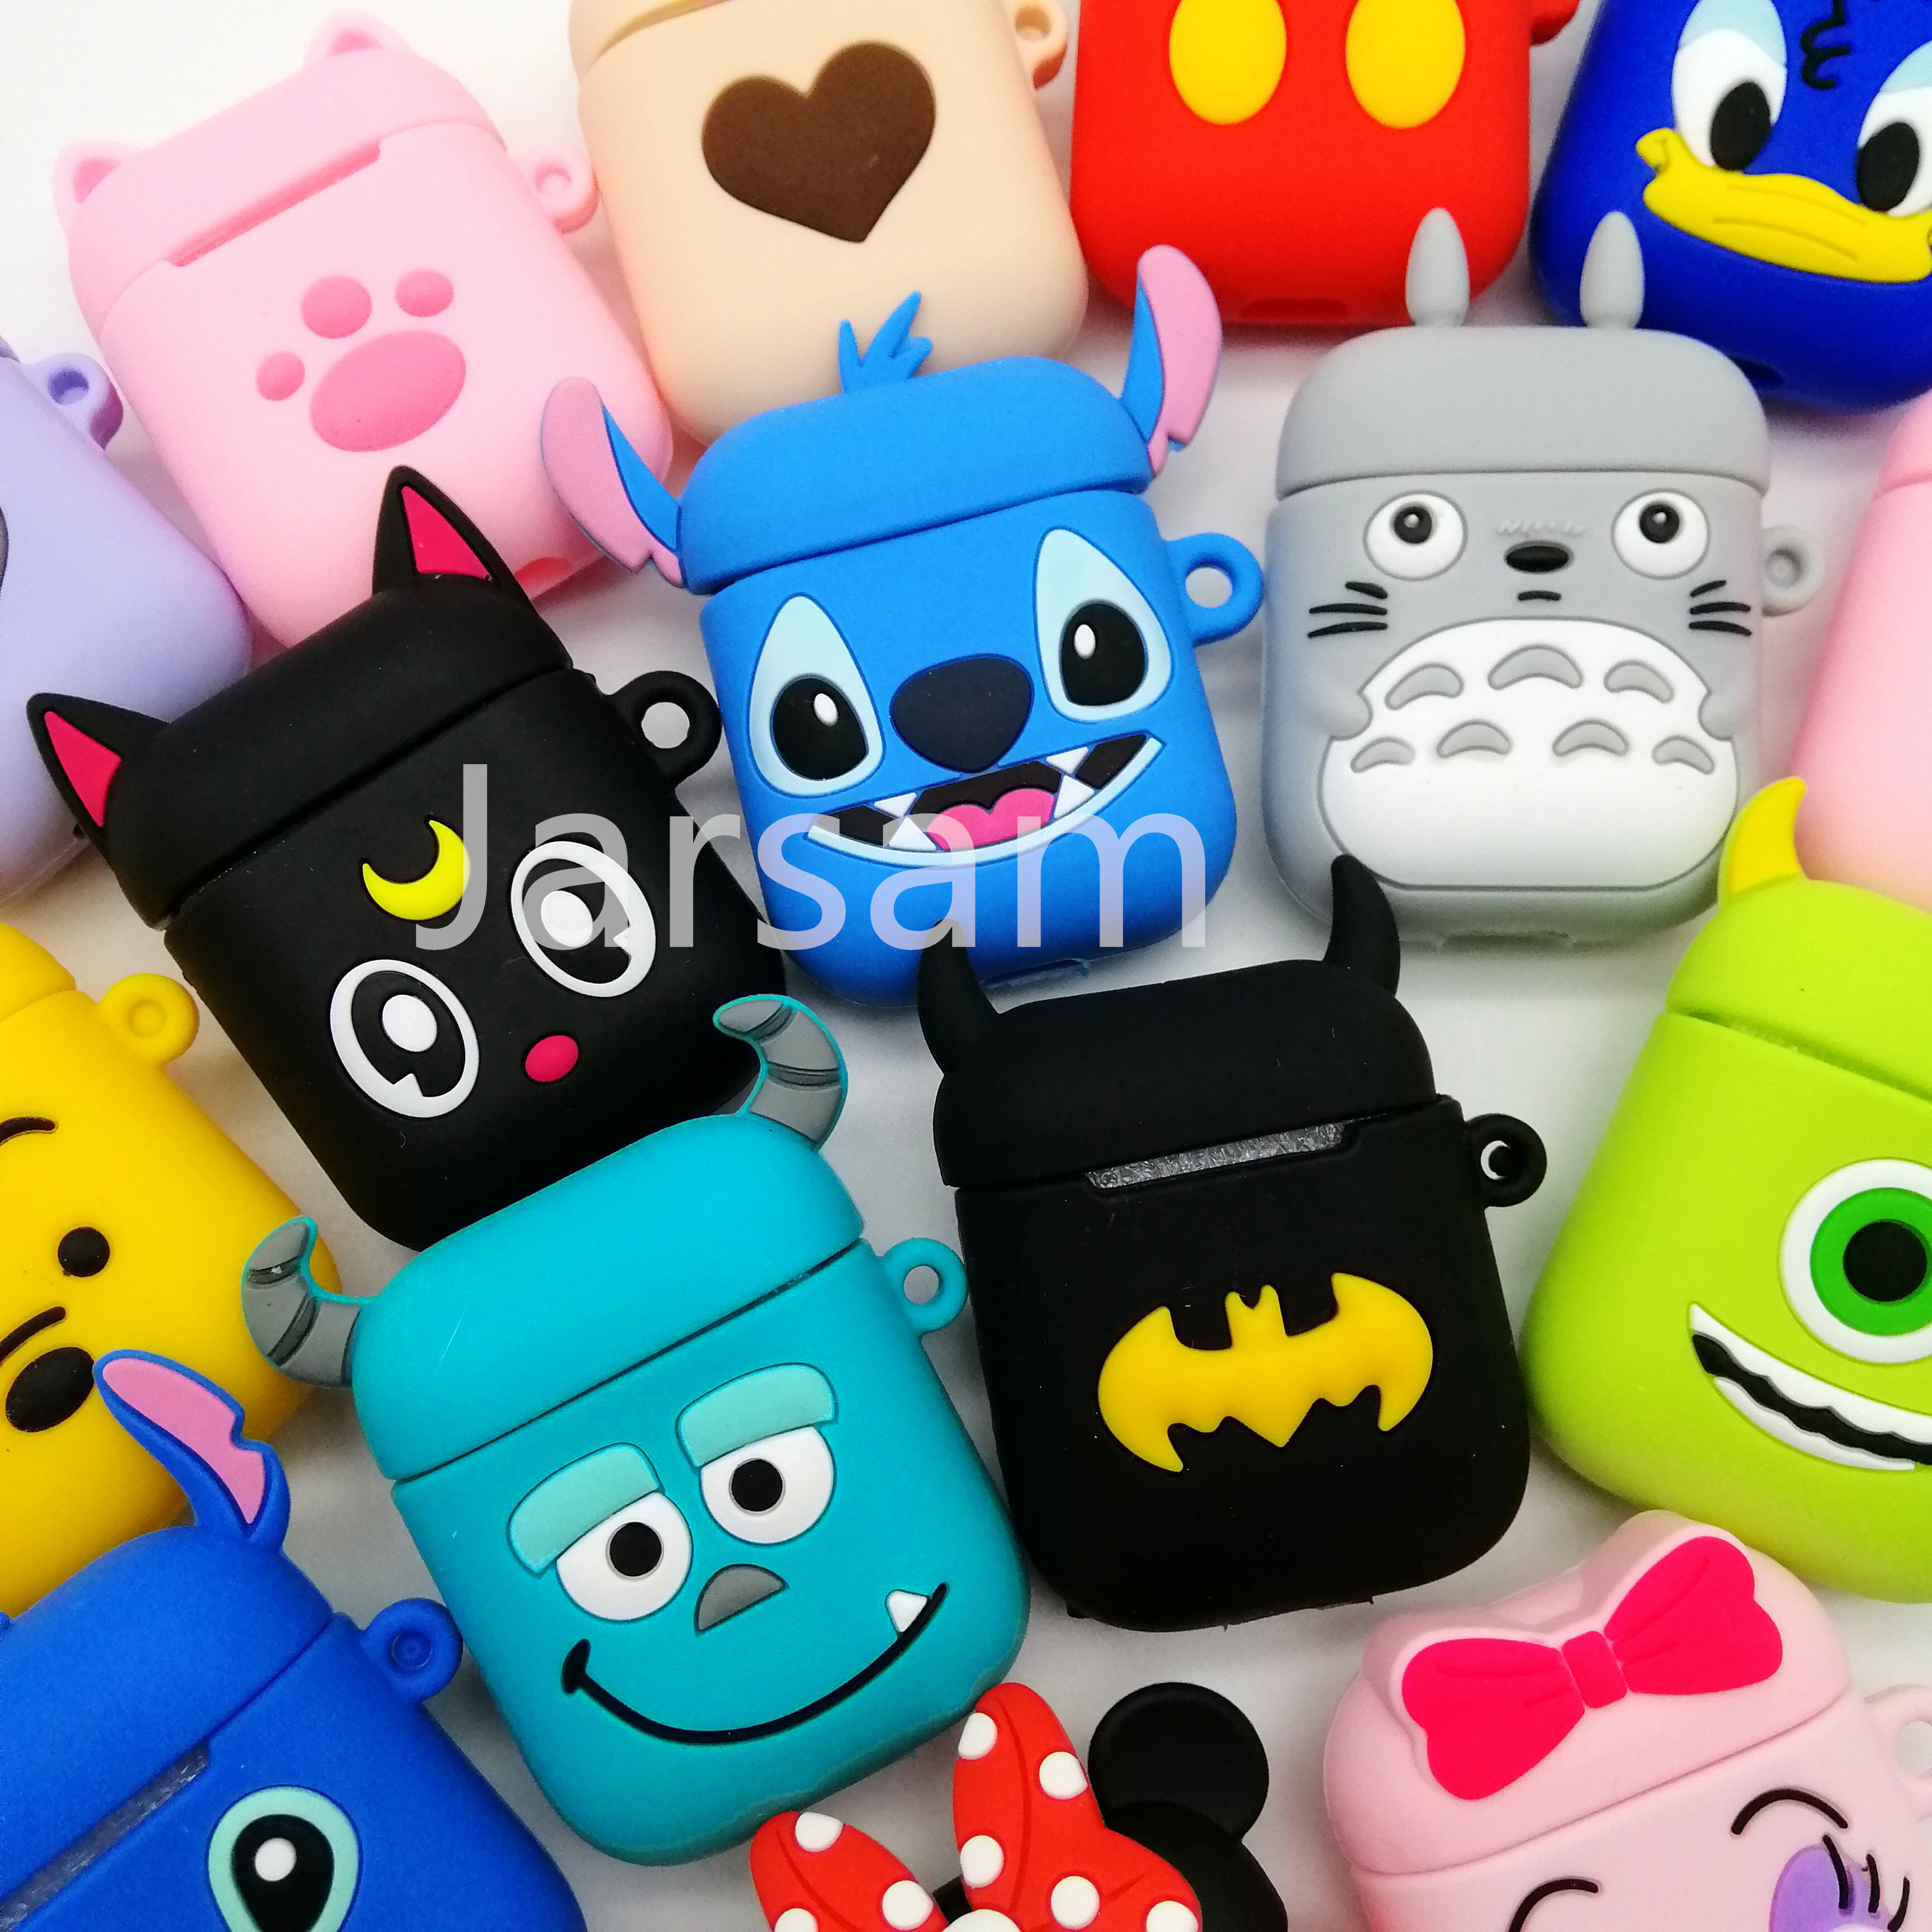 Earphone-Case Airpods-Protective-Cover Apple Airpods Silicone Cartoon Wireless for Cute title=